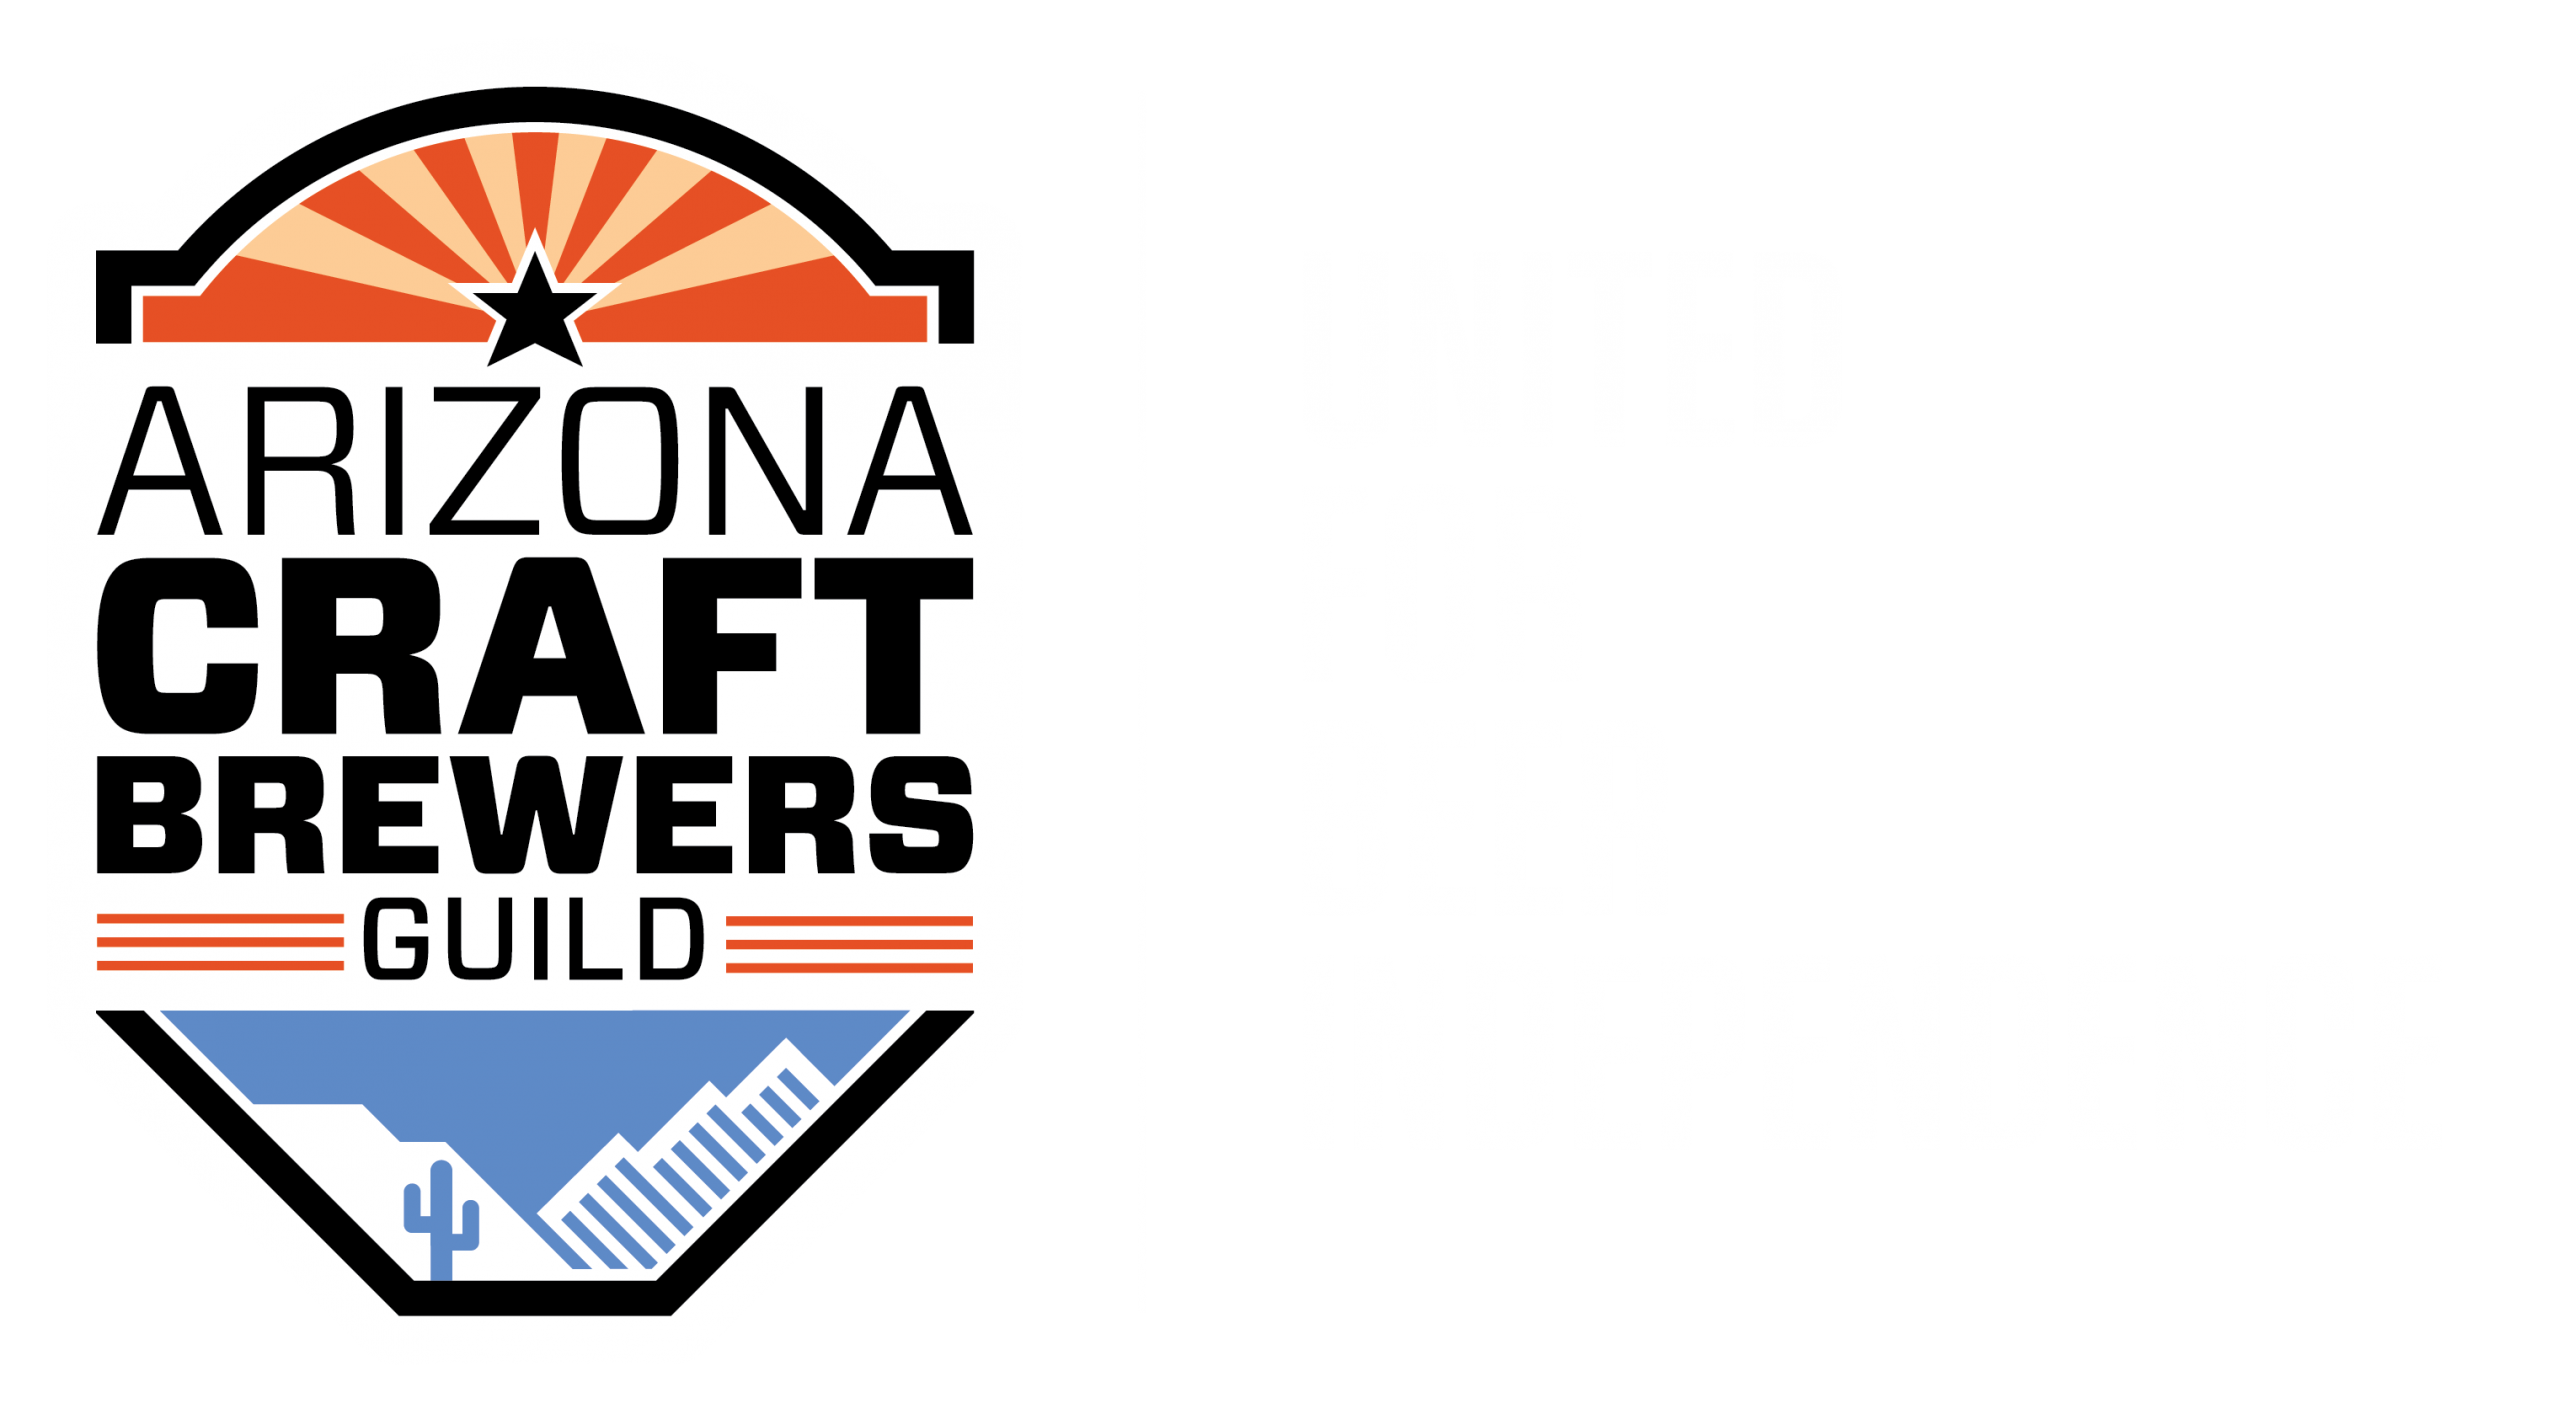 Caps & Corks | Arizona Craft Brewers Guild